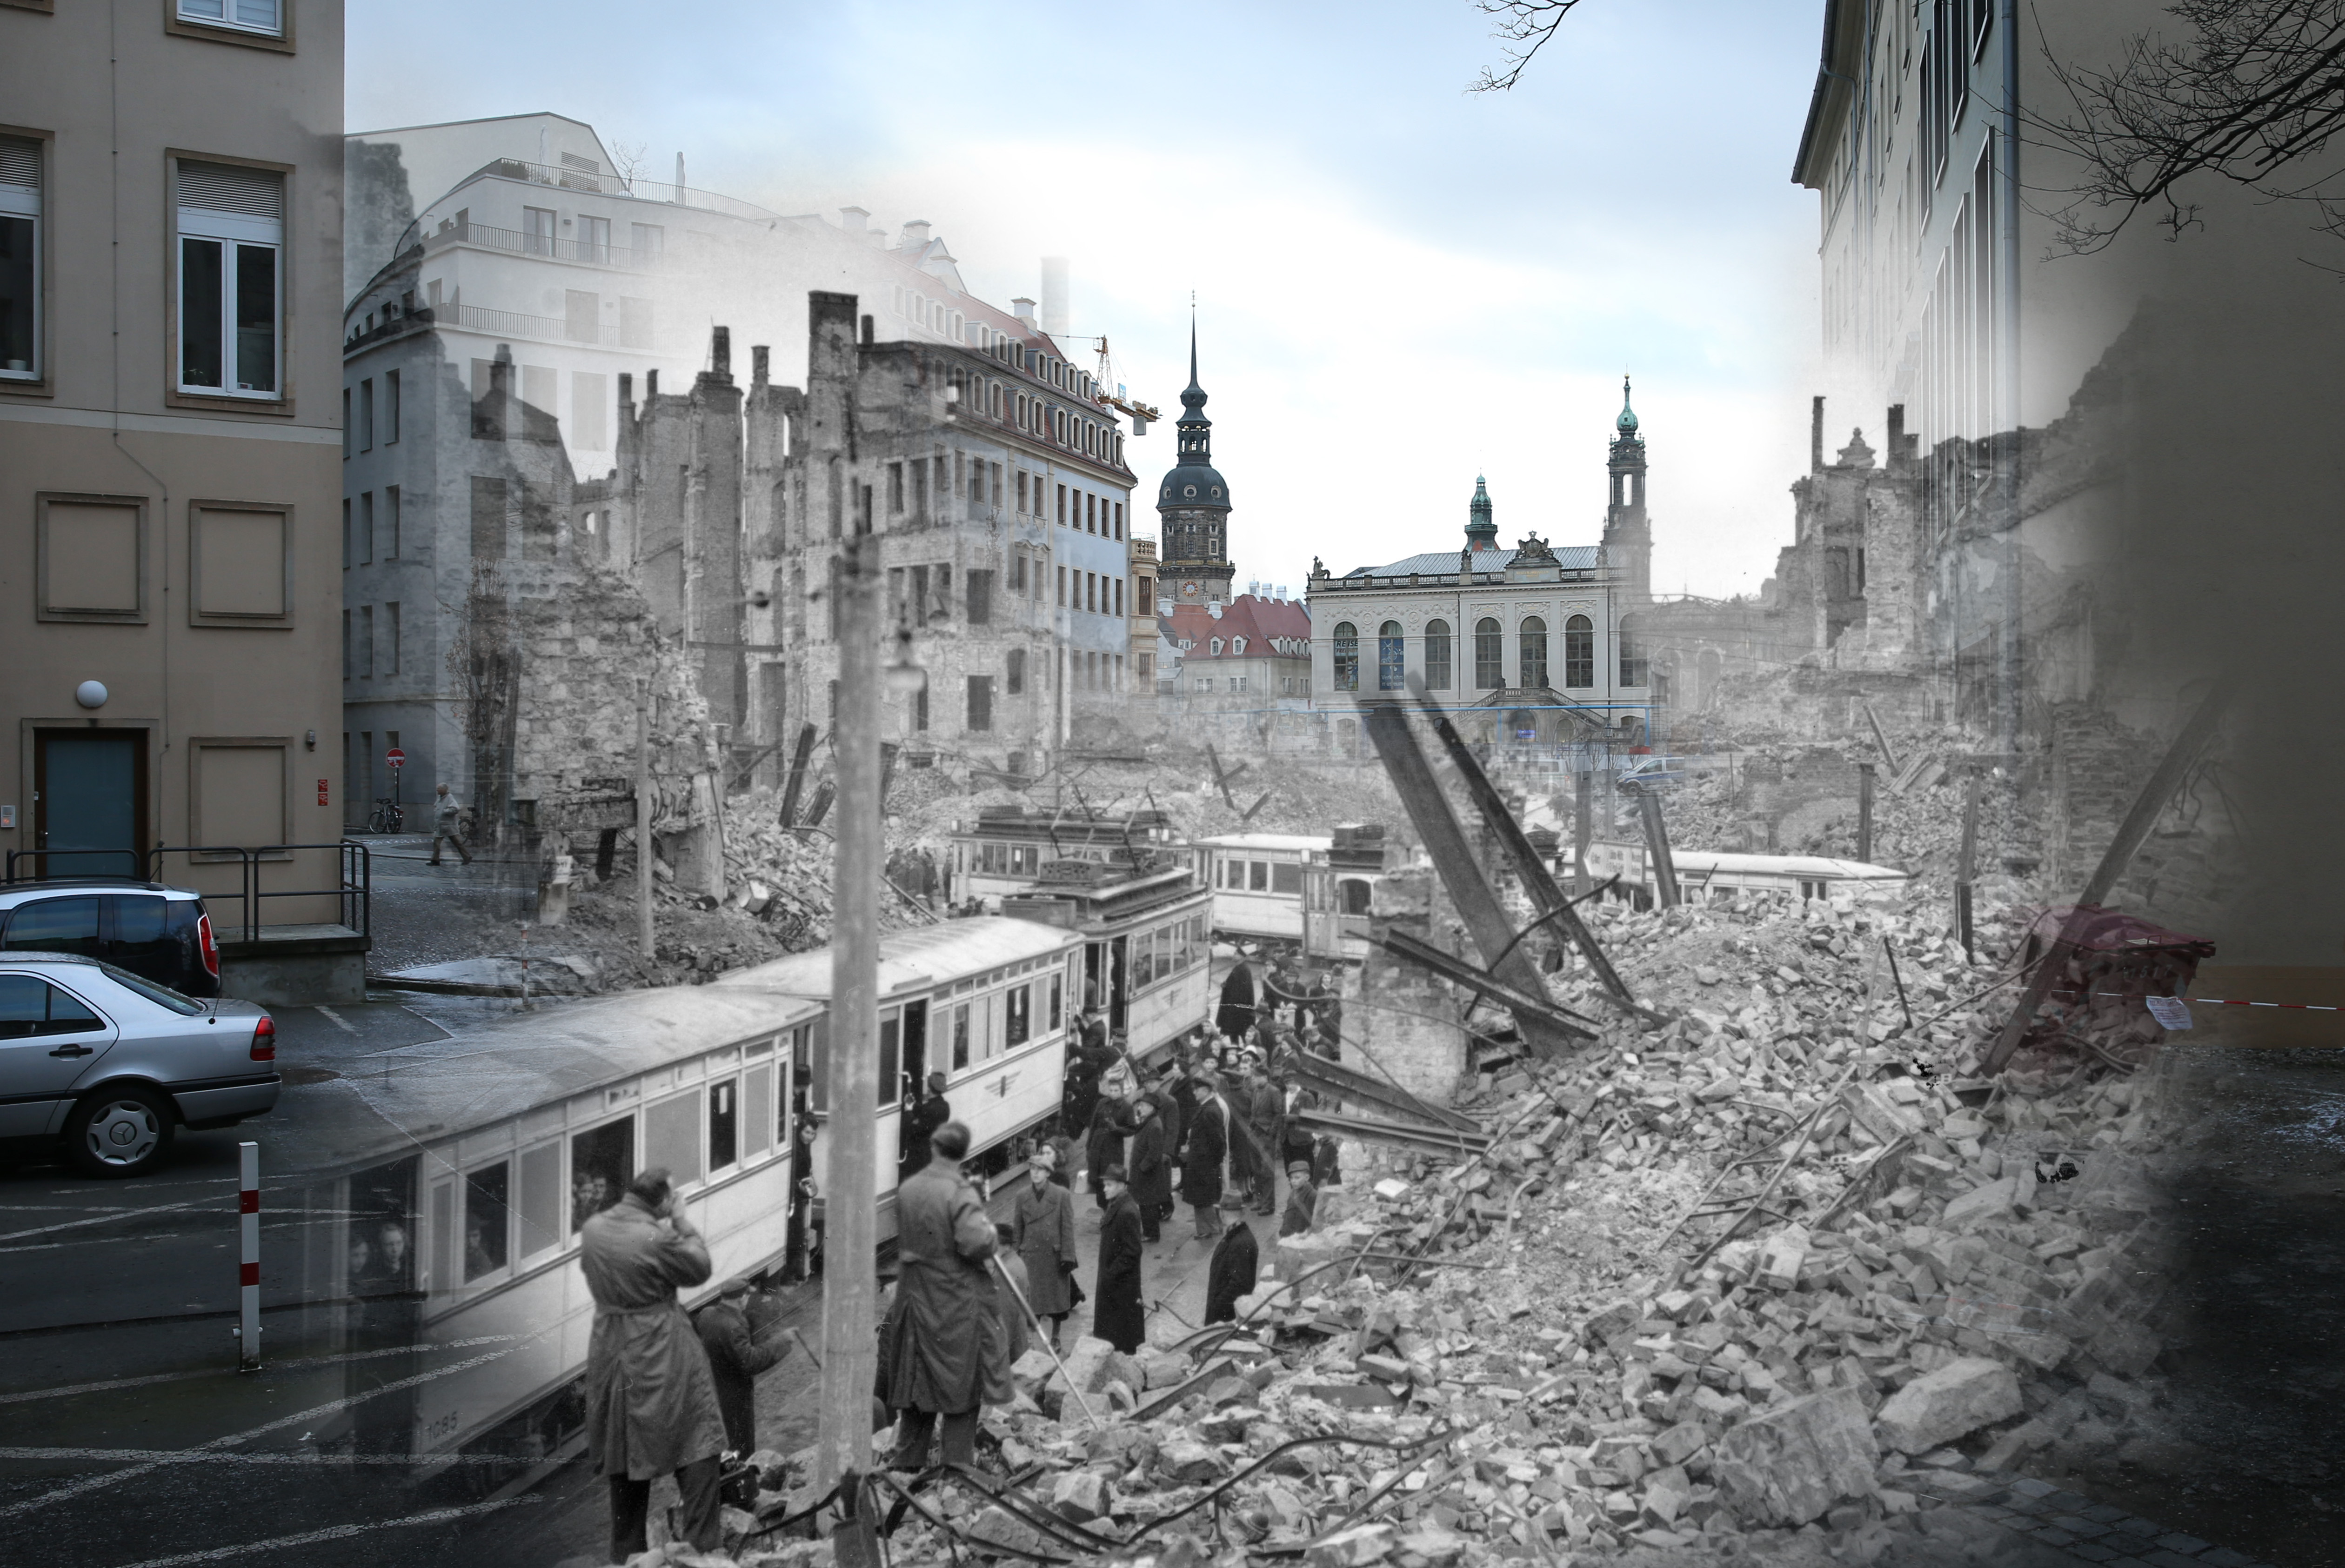 COMPOSITE: This digital composite image shows Moritzstrasse and the Juedenhof palace in 1946 still wrecked from the Allied firebombing of February 13, 1945 (Fred Ramage, Keystone) as well as the same area today on February 7, 2015 (Sean Gallup). *** ARCHIVE *** #3348955 DRESDEN, GERMANY - MARCH 13, 1946: People getting on trams in the midst of the ruins left by an Allied air raid on Johannstrasse, Dresden, in the Soviet zone of Germany after the Second World War. (Photo by Fred Ramage/Keystone Features/Getty Images) ***MODERN DAY*** DRESDEN, GERMANY - FEBRUARY 7: This view shows Moritzgasse, which before World War II was called Moritzstrasse, was located near Johannstrasse and had a tram line, leading towards the former Juedenhof palace, which today is a transportation museum, on February 7, 2015 in Dresden, Germany. The entire area, as well as the vast majority of the city, were devastated by the Allied firebombing of February 13-14, 1945. The city of Dresden will commemorate the 70th anniversary of the attacks on February 13. (Photo by Sean Gallup/Getty Images)